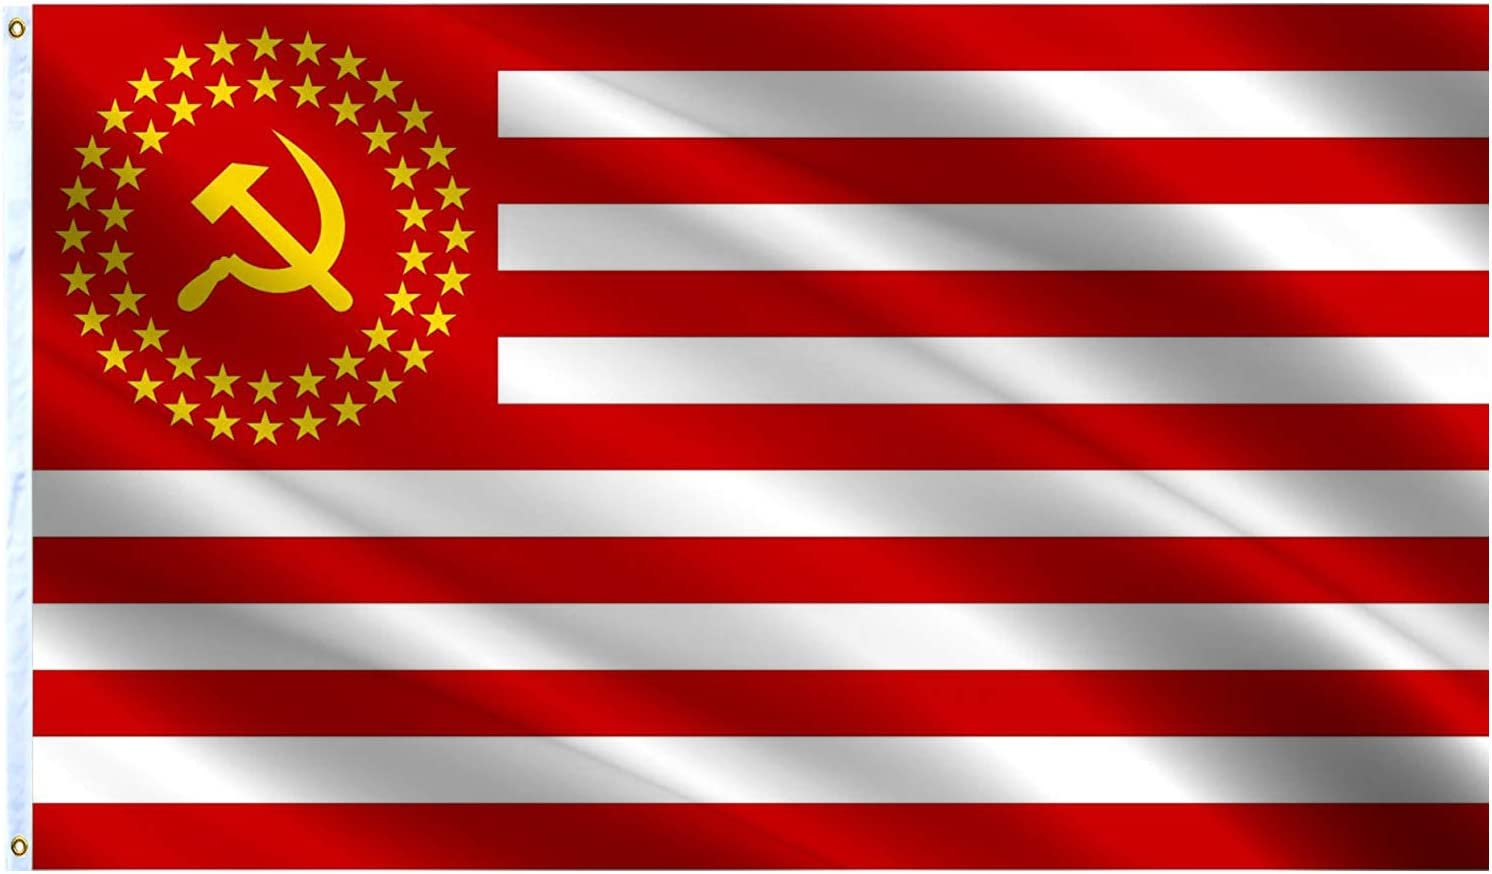 VAFLAG The United Socialist States of America Flag Communist American US USA Republics National Flags 3x5 Ft 50 Stars Flag Vivid Color and Fade Resistant - Cool Outdoor Banner with Grommets Wall Flags